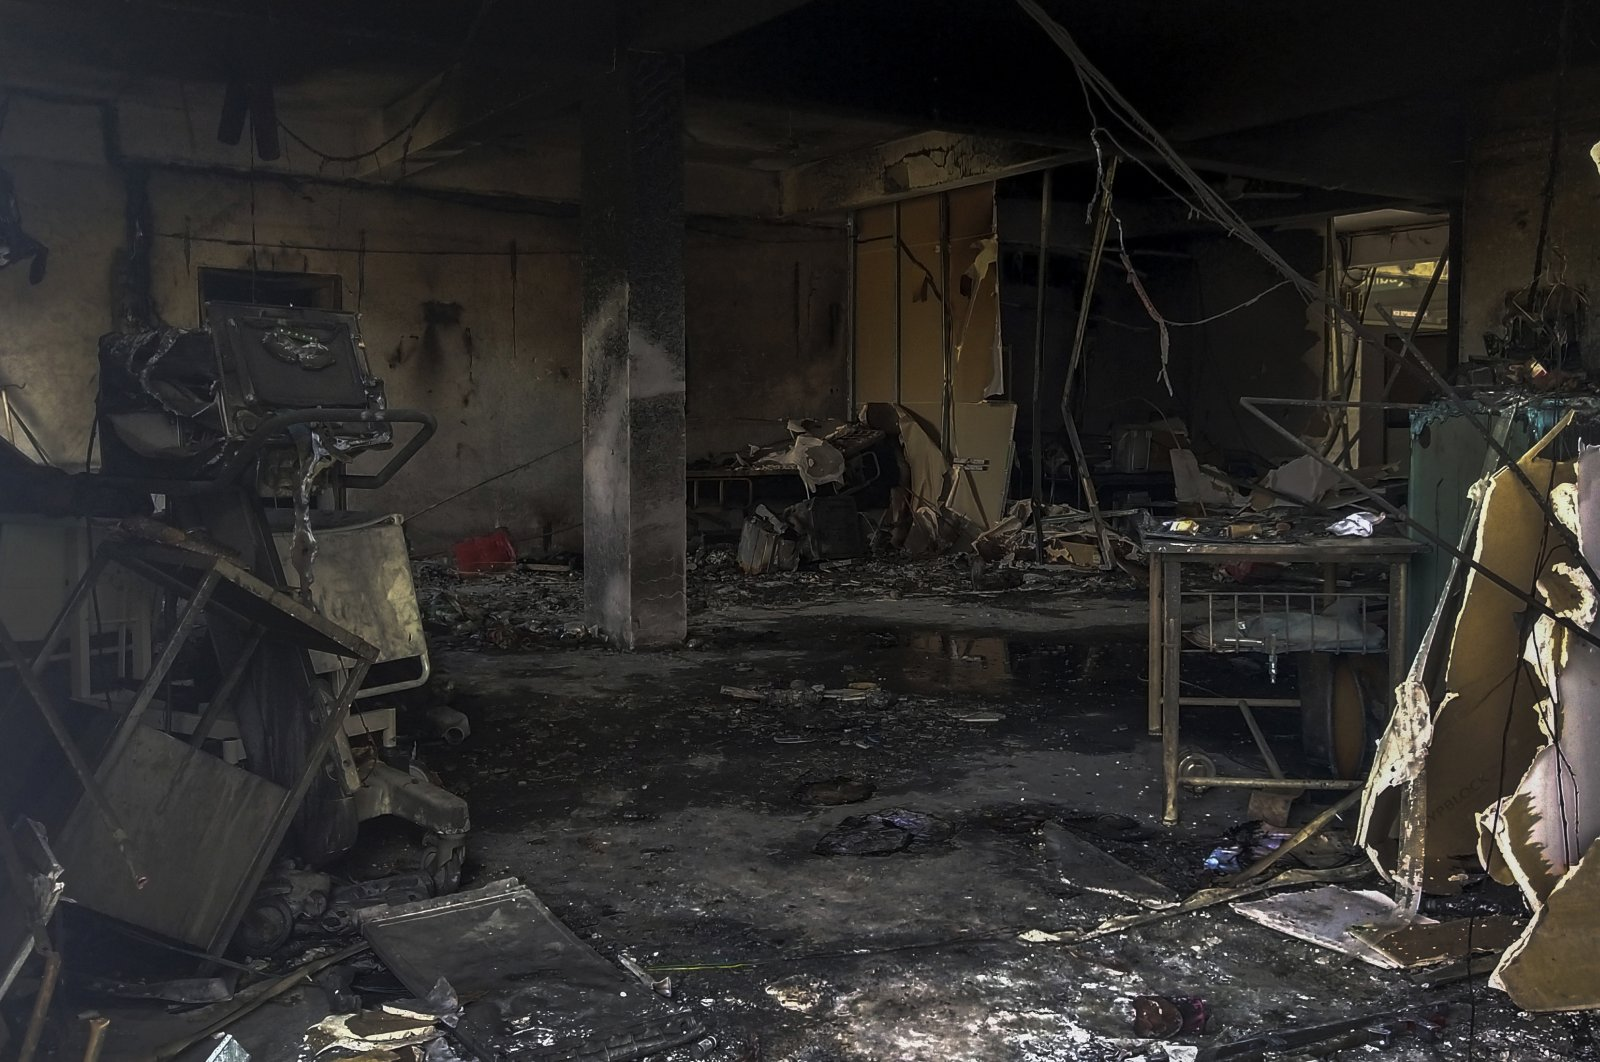 Charred furniture and other items are seen after a deadly fire at the Welfare Hospital in Bharuch, western India, Saturday, May 1, 2021. (AP Photo)